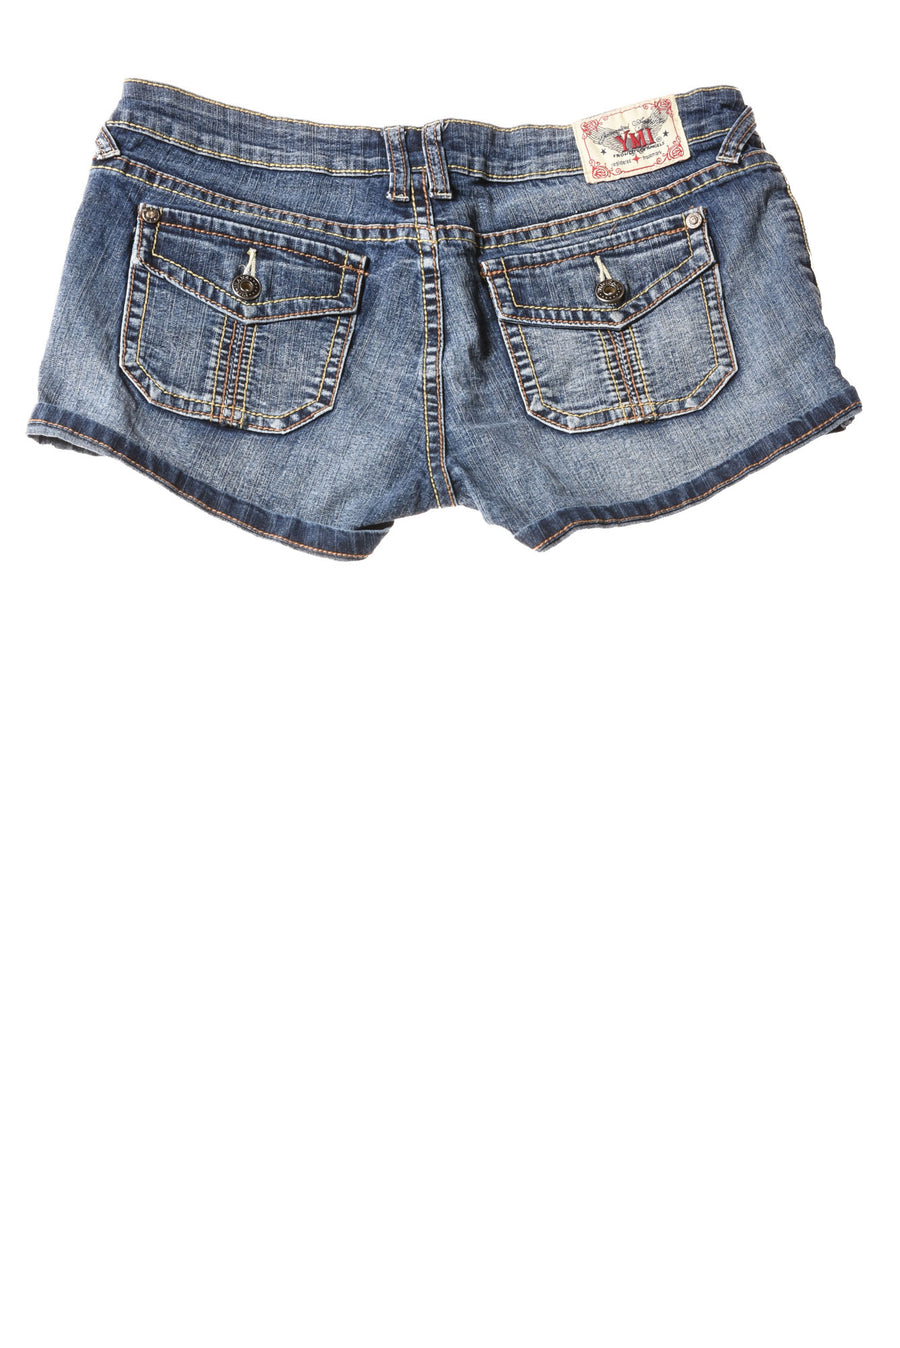 USED YMI Women's Shorts 7 Blue